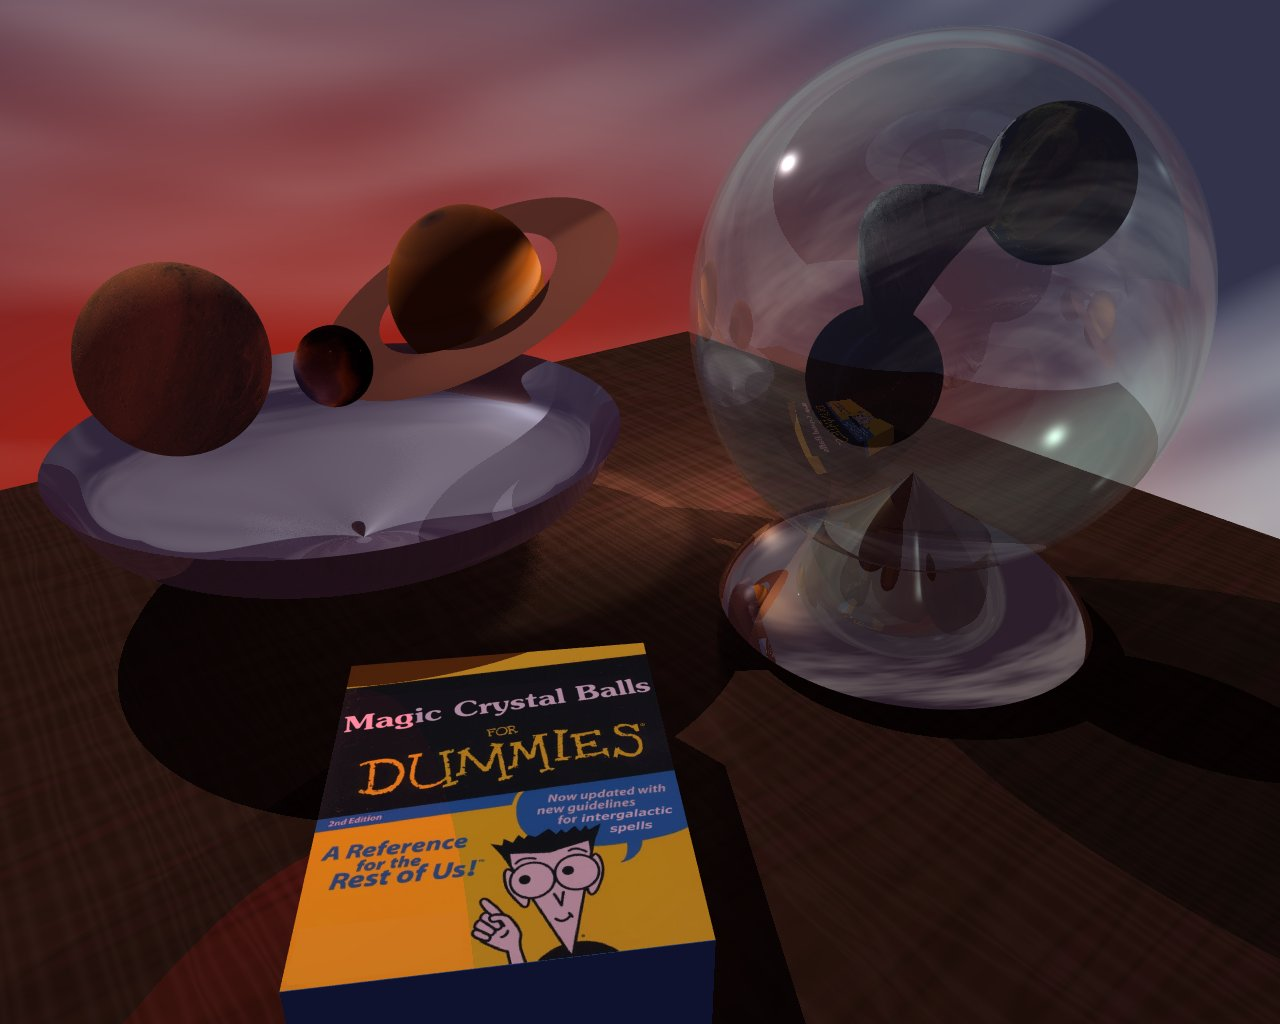 Magic crystal balls for dummies, Povray, 2005